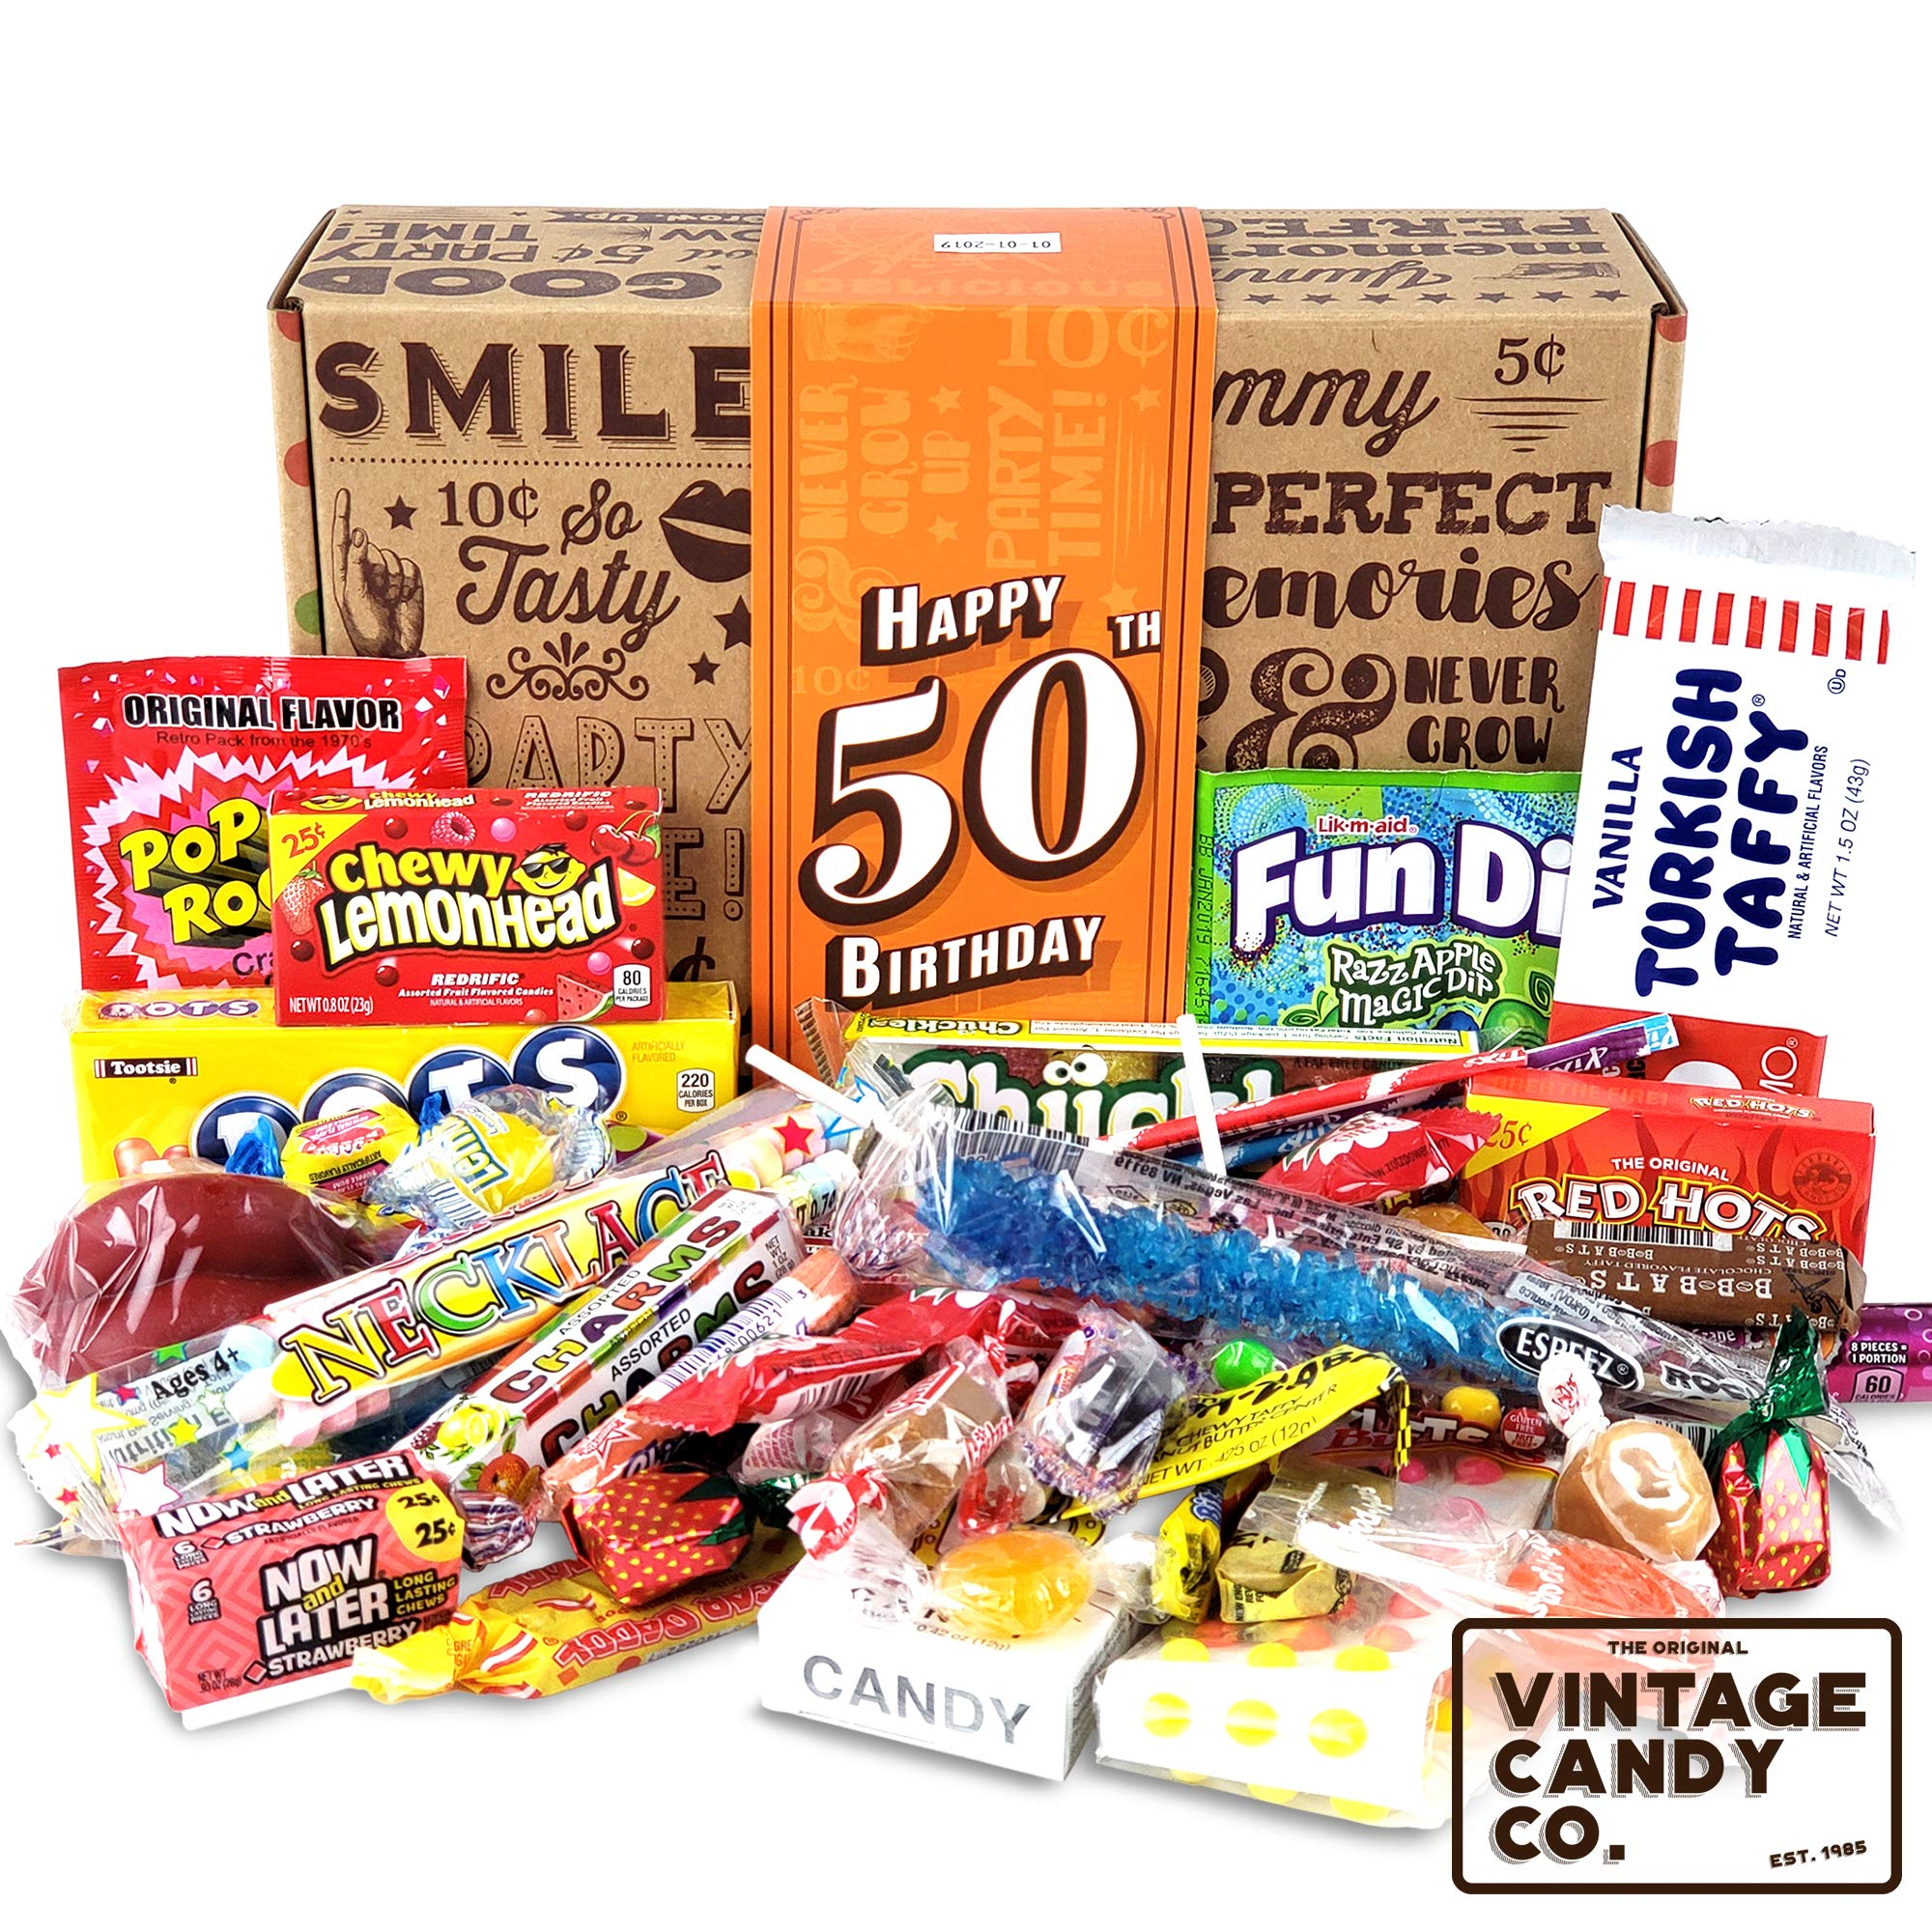 VINTAGE CANDY CO. 50TH BIRTHDAY RETRO CANDY GIFT BOX - 1969 Decade Nostalgic Childhood Candies - Fun Gag Gift Basket For Milestone FIFTIETH Birthday - PERFECT For Man Or Woman Turning 50 Years Old